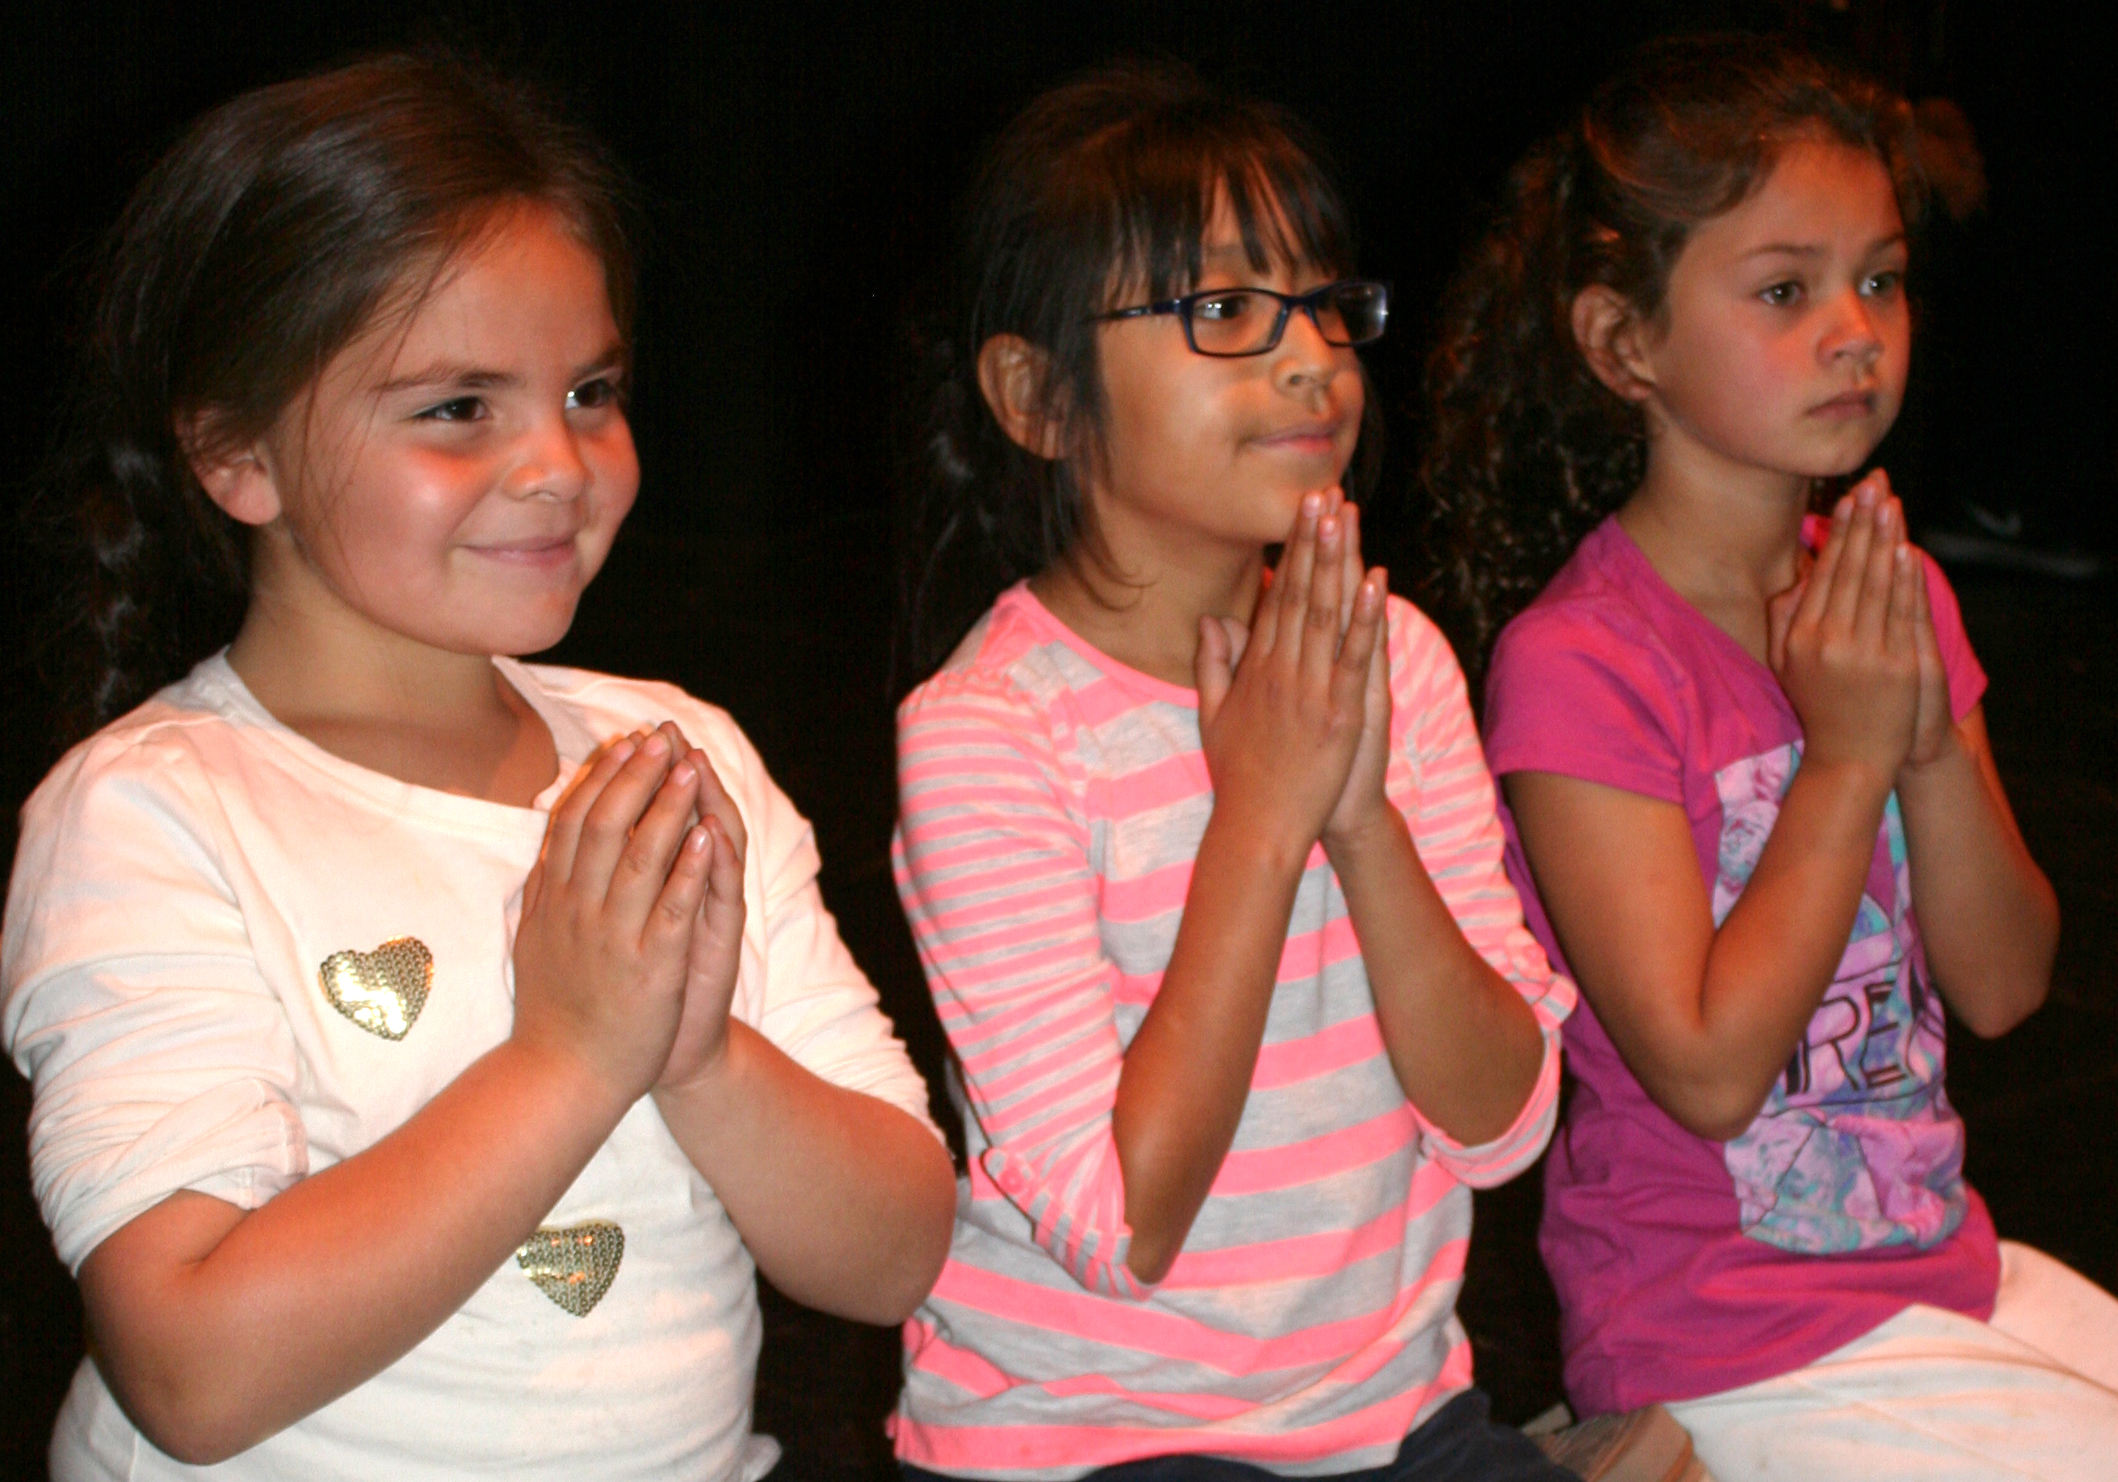 3 Girls Praying